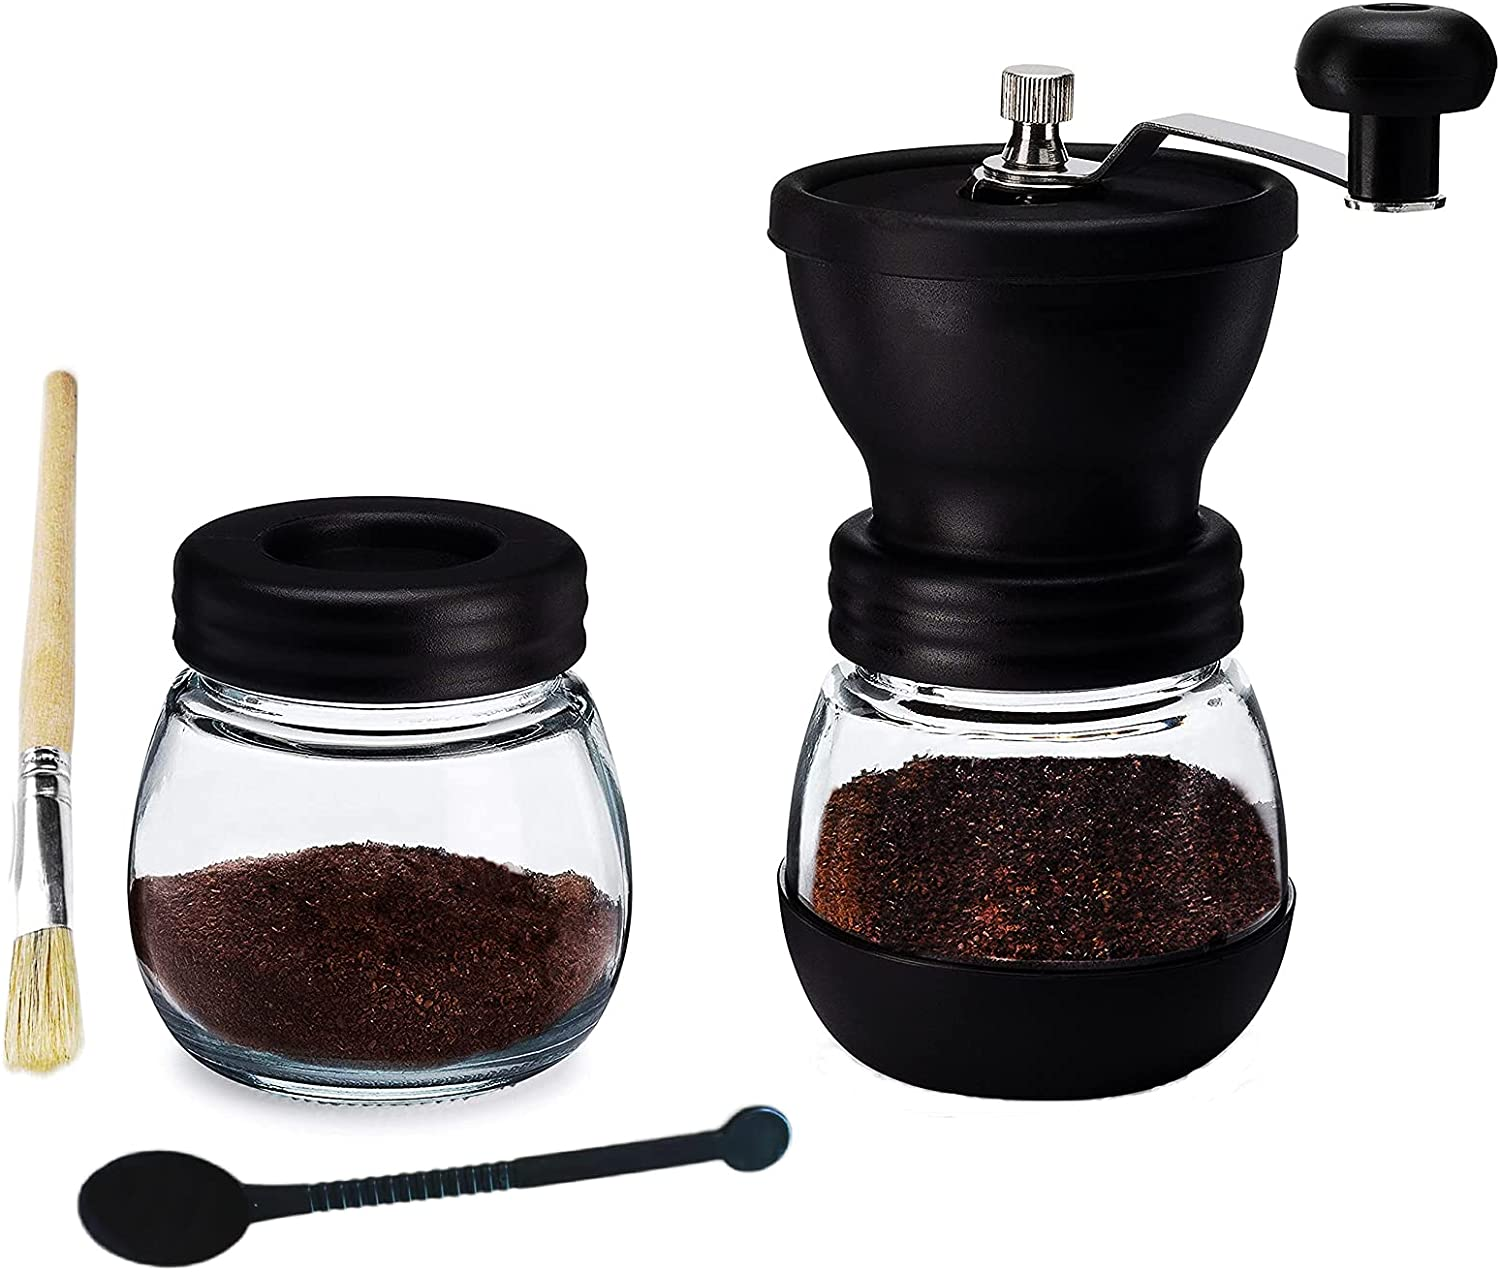 Soldering Manual Coffee Grinder Hand Ceramic A Soldering with Burrs